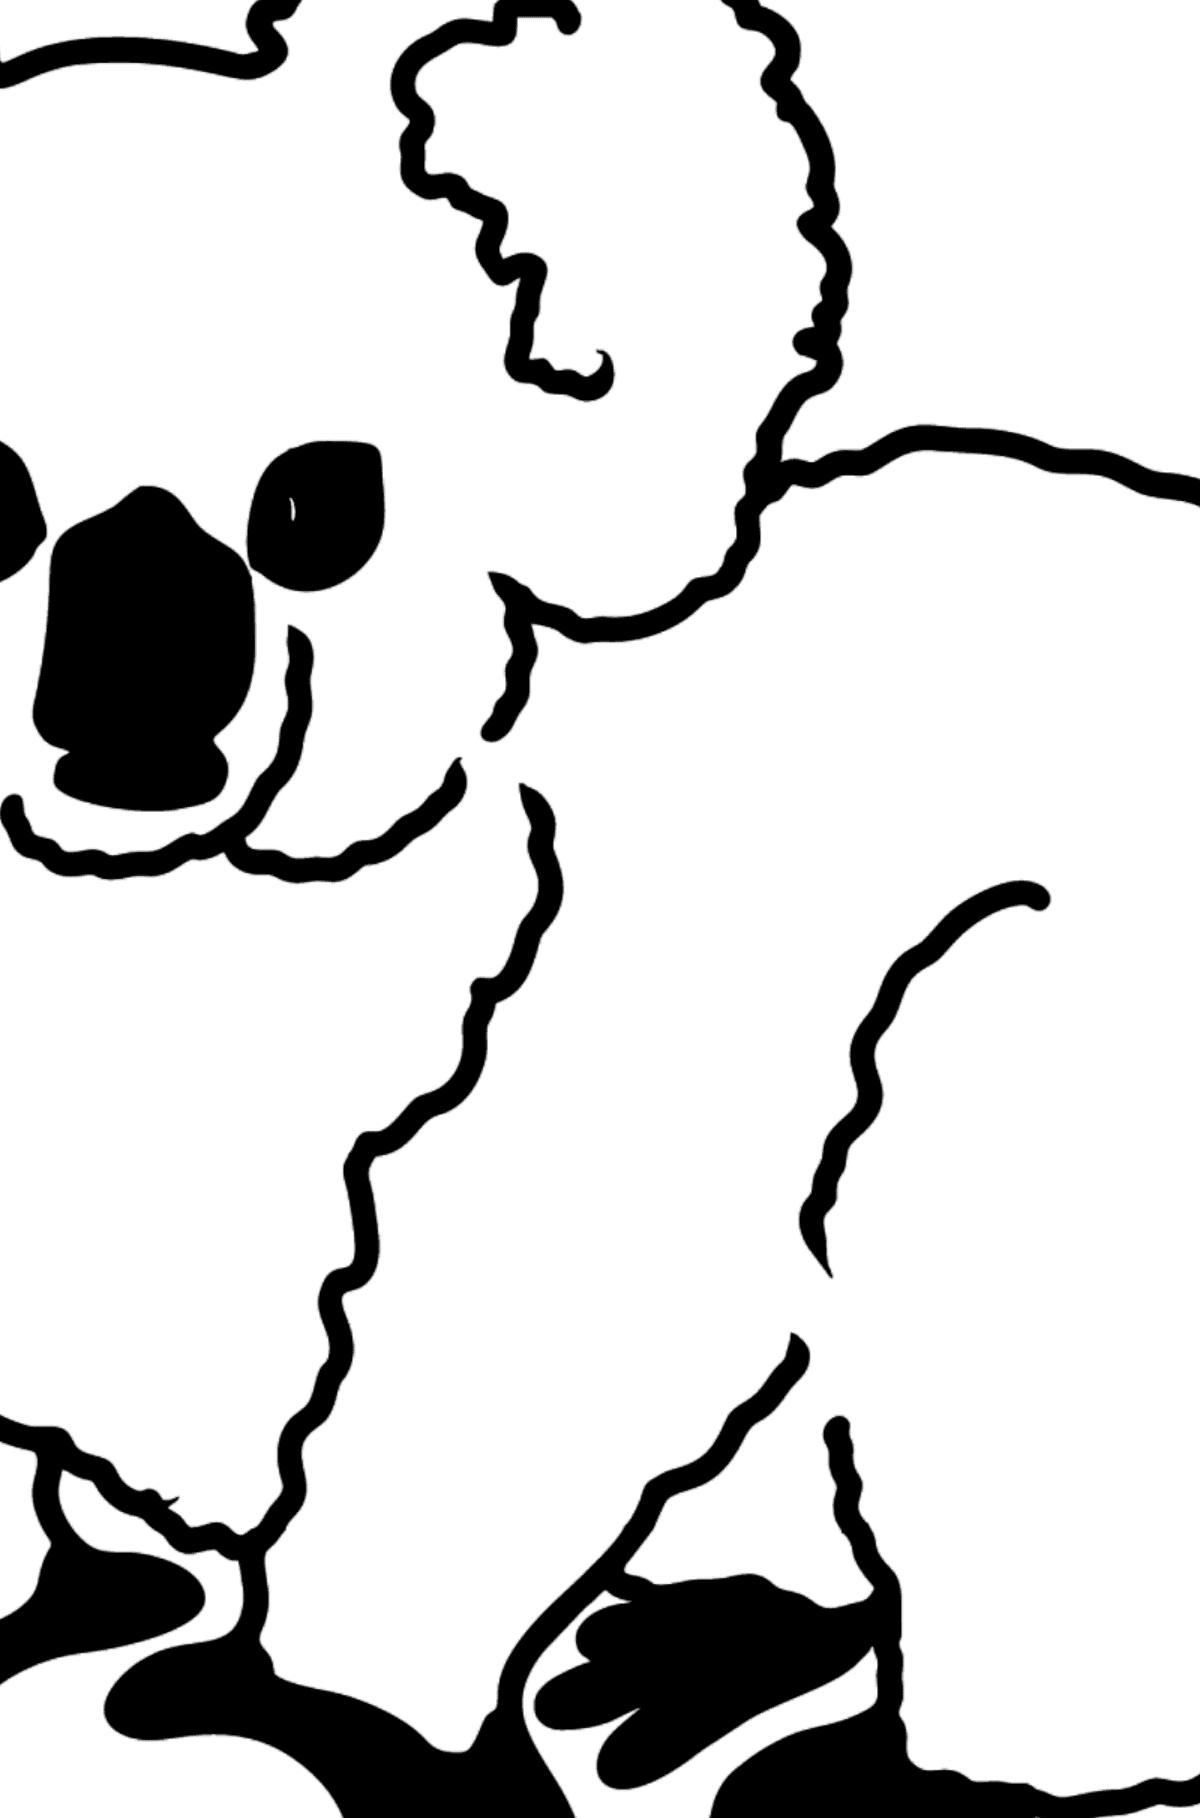 Koala coloring page - Math Coloring - Subtraction for Kids